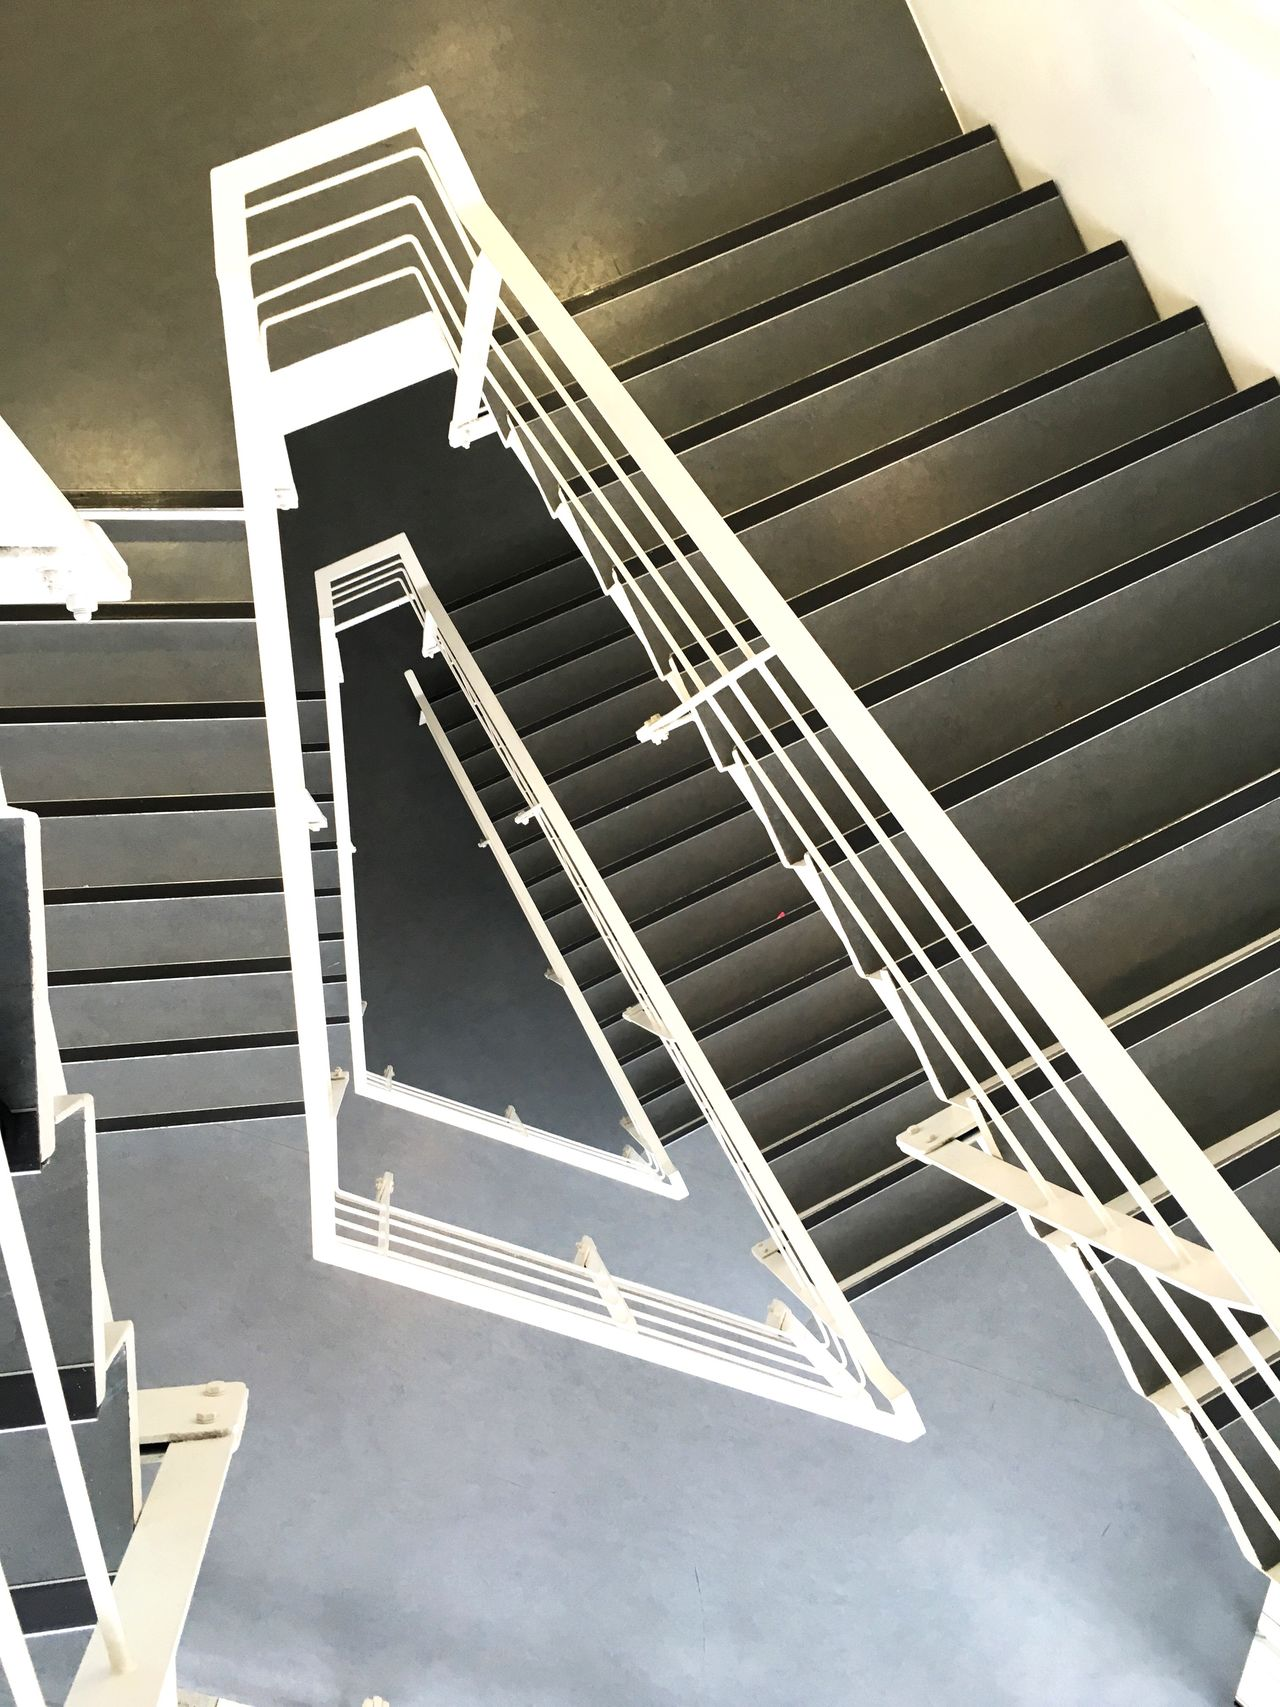 Staircase Staircase Salford Steps A Bird's Eye View